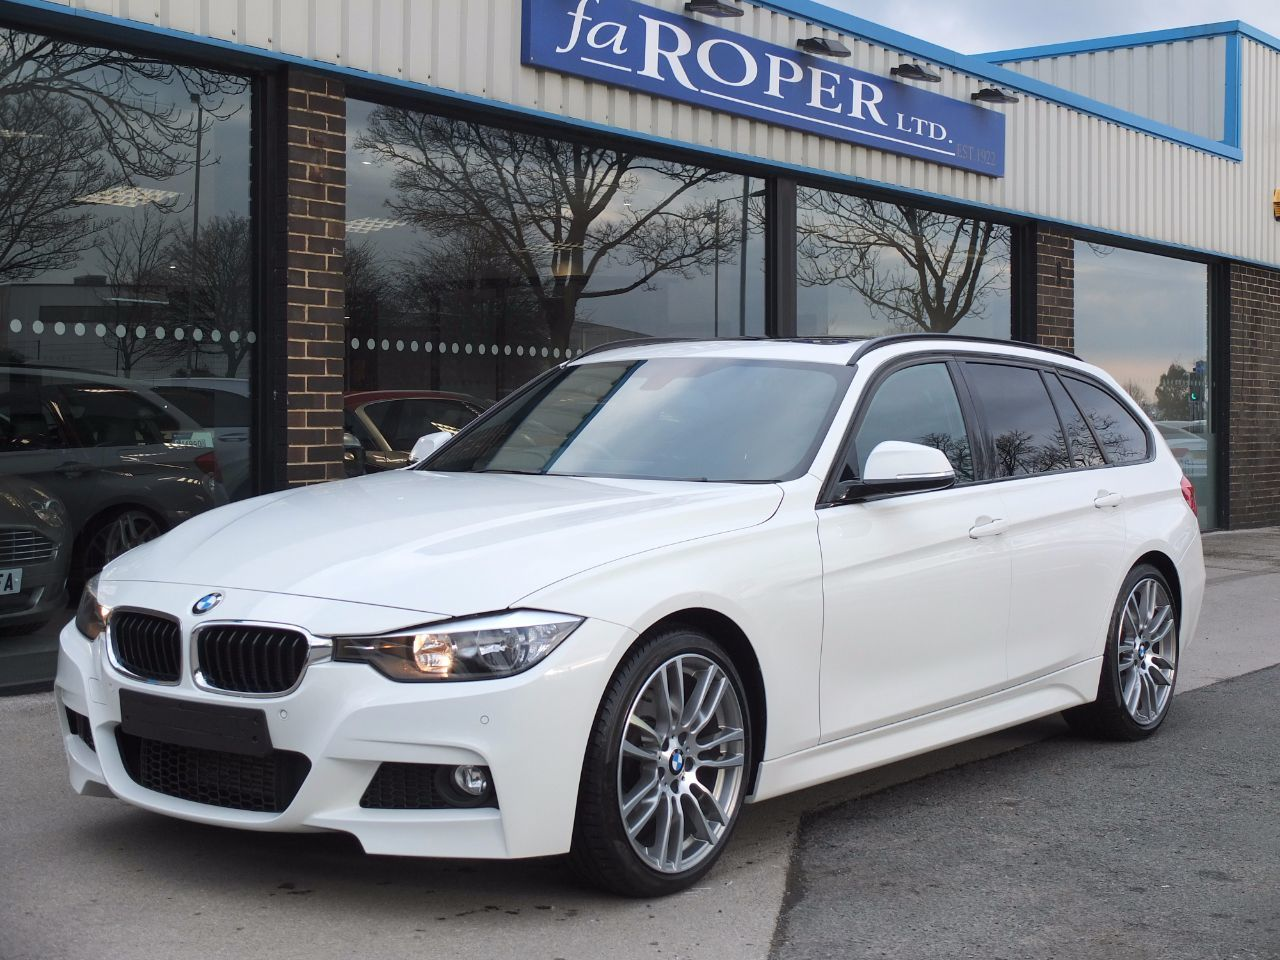 BMW 3 Series 3.0 330d M Sport Touring Auto ++++Spec Estate Diesel Alpine WhiteBMW 3 Series 3.0 330d M Sport Touring Auto ++++Spec Estate Diesel Alpine White at fa Roper Ltd Bradford